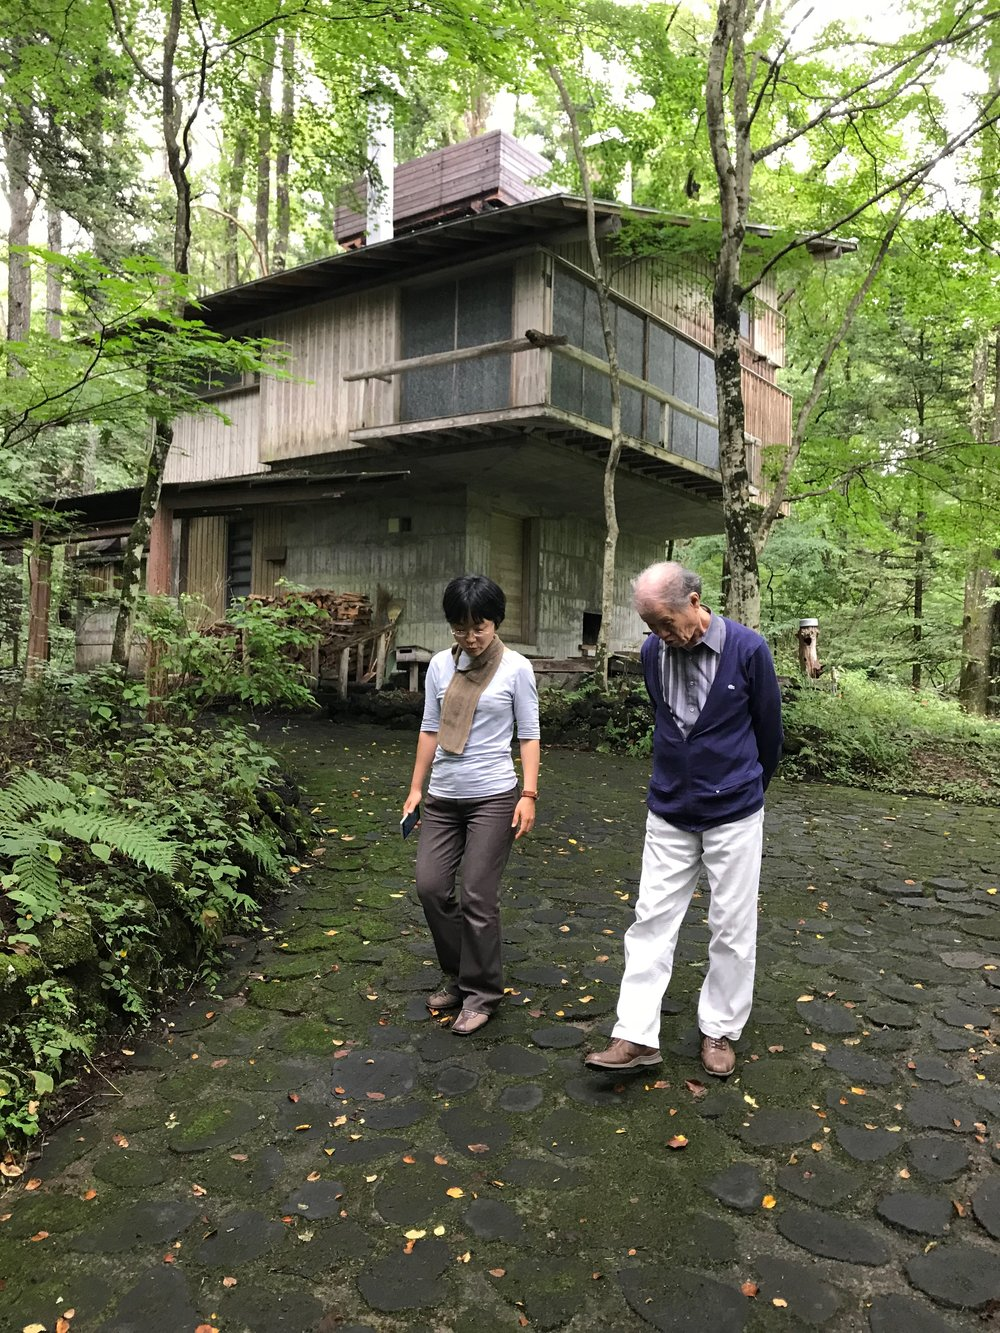 """Maki Utsunomiya and Mr. Kitazawa in Karuizawa at Yoshimura Sanso, the summer house of Raymond protégé Junzo Yoshimura. Maki gleefully pointed out, """"every architecture student in Japan is required to draw and build a model of it!"""""""